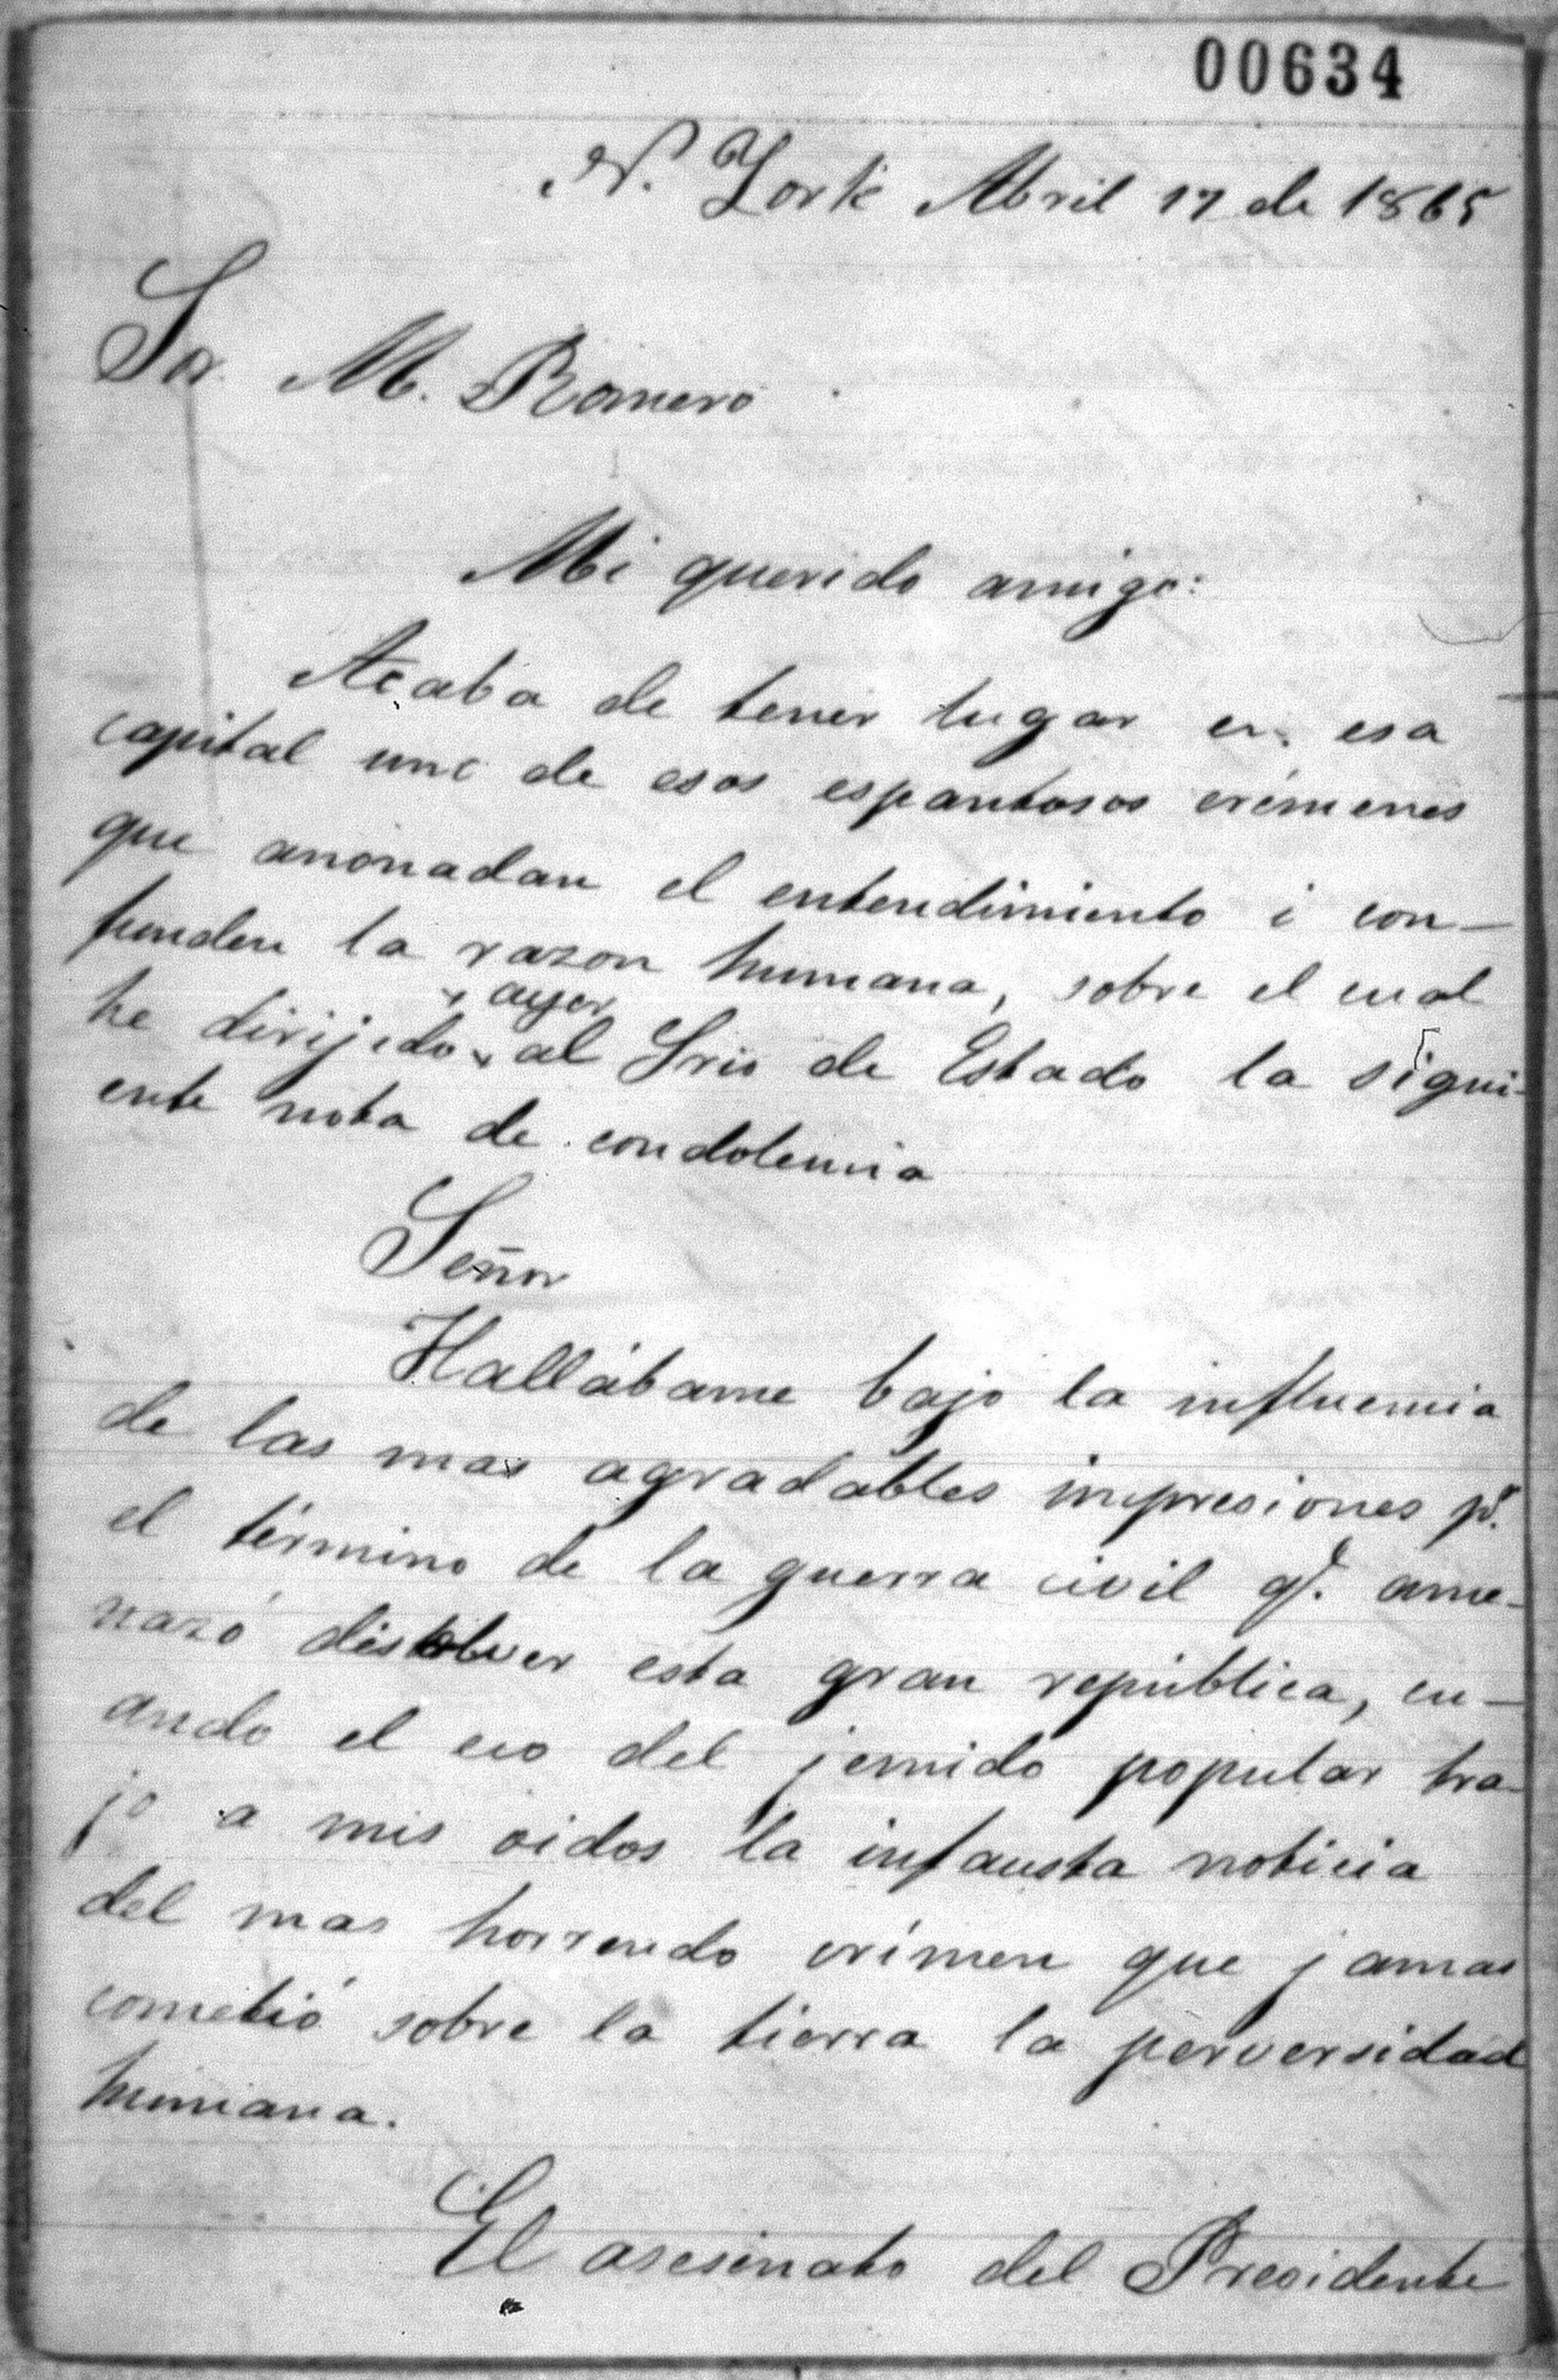 Letter to Mexican diplomat Matias Romero from Blas Bruznal